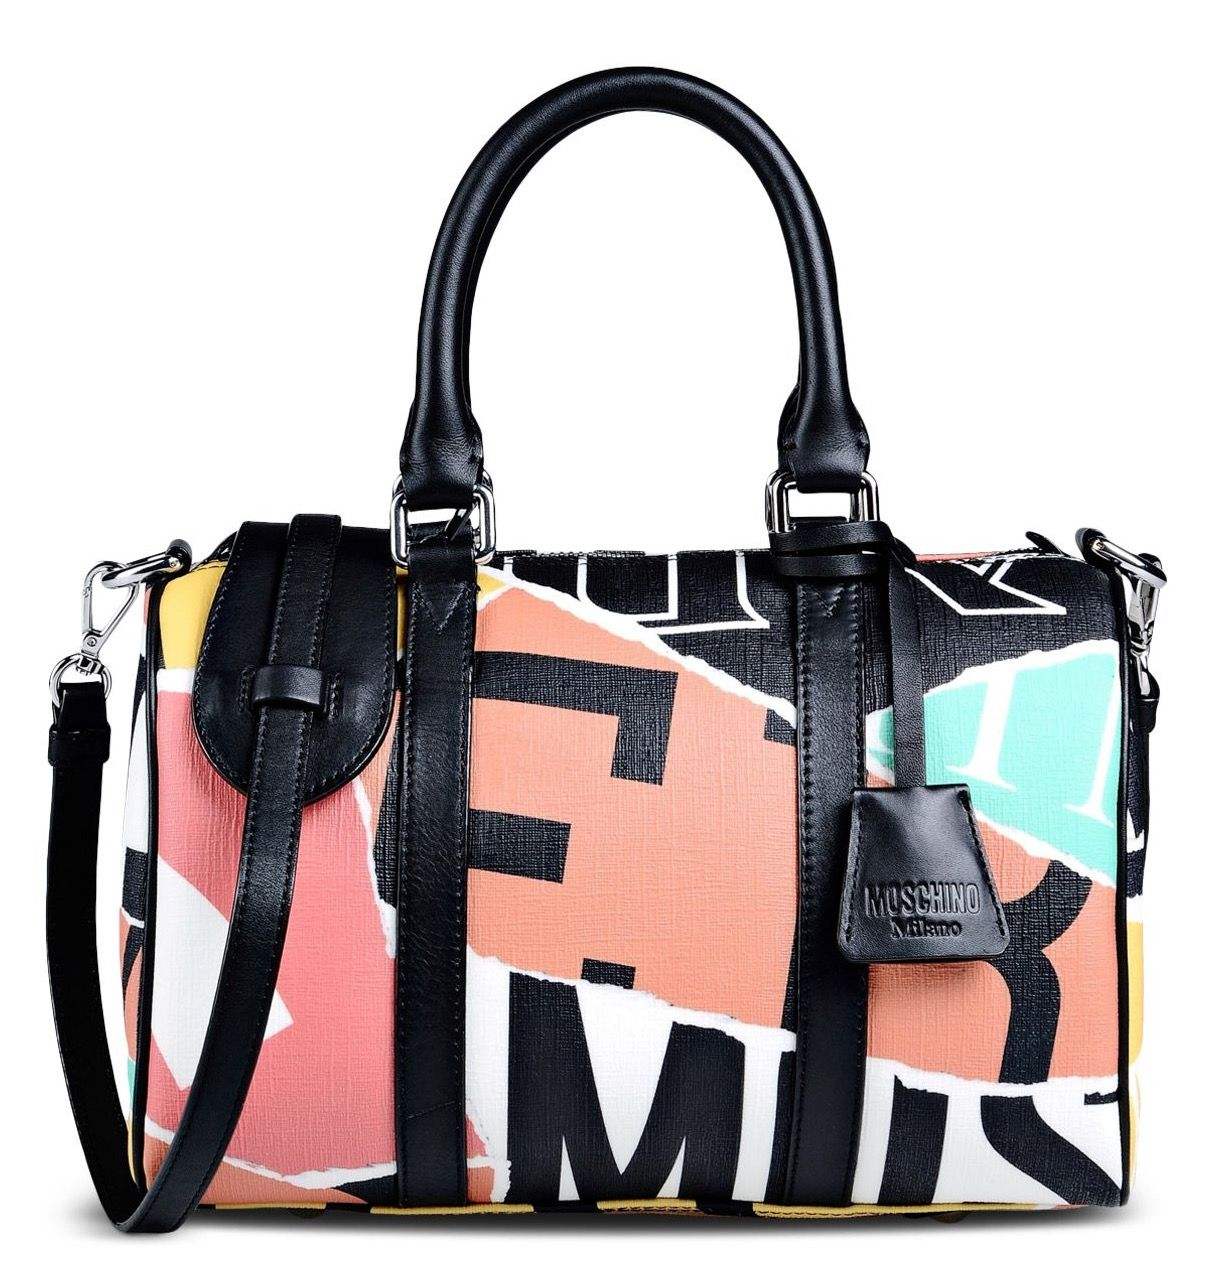 patchwork studded tote - Multicolour Moschino Pay With Visa Cheap Price Free Shipping Lowest Price lxjDku16kH